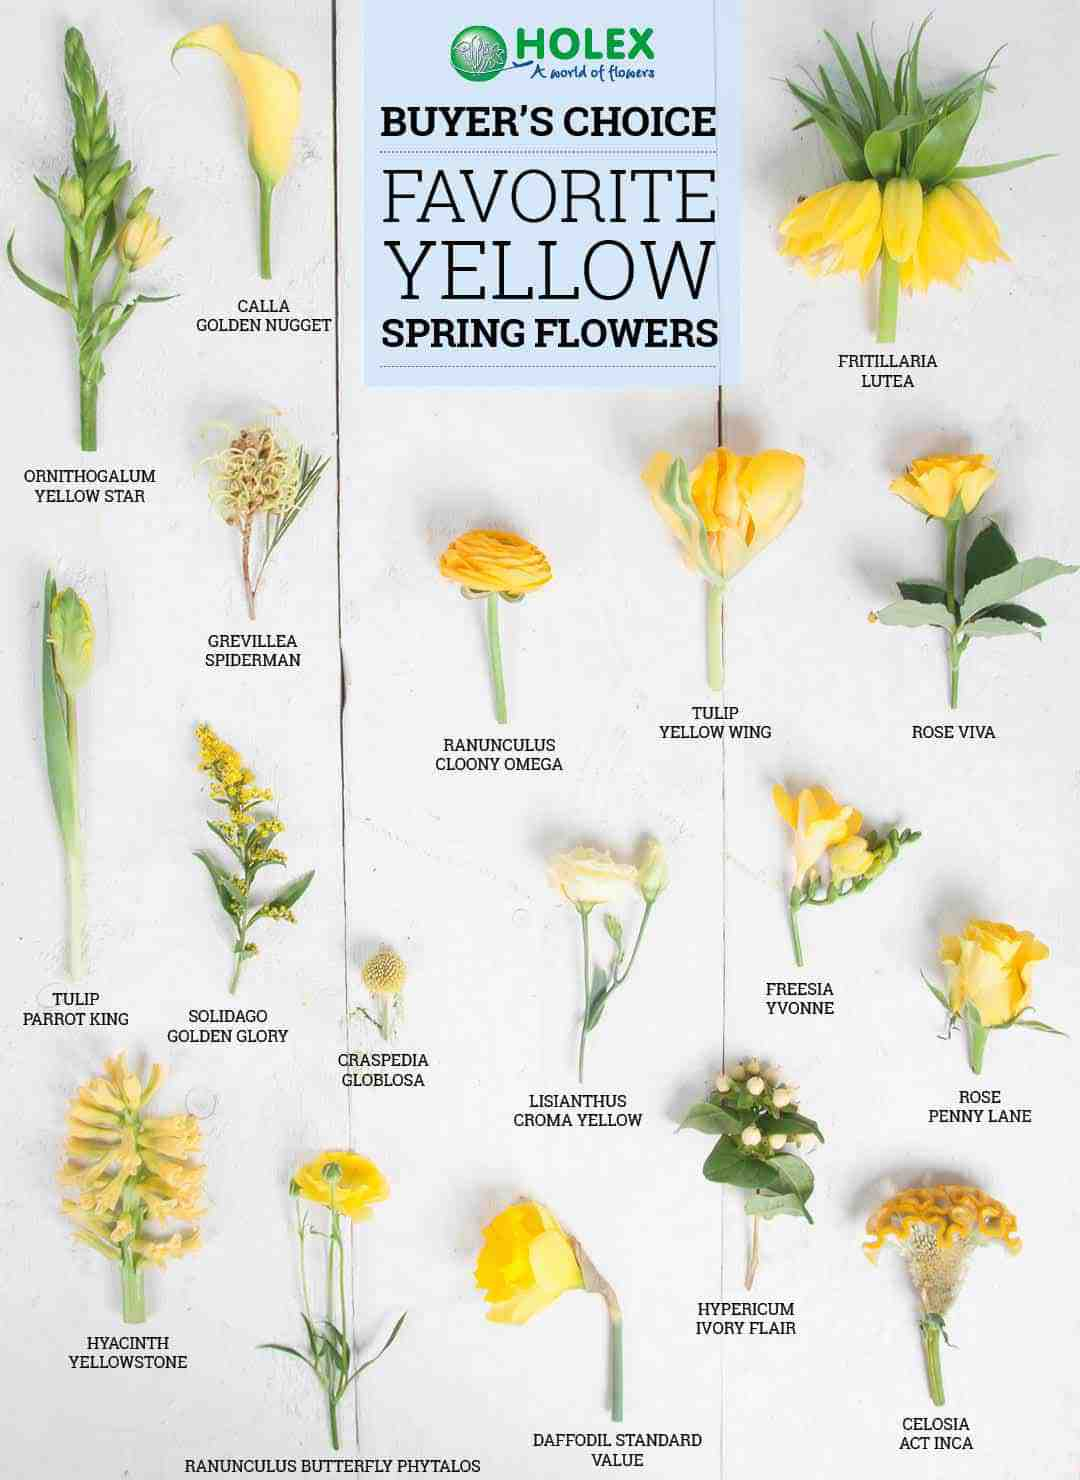 Favorite Yellow Spring Flowers | Holex Flower